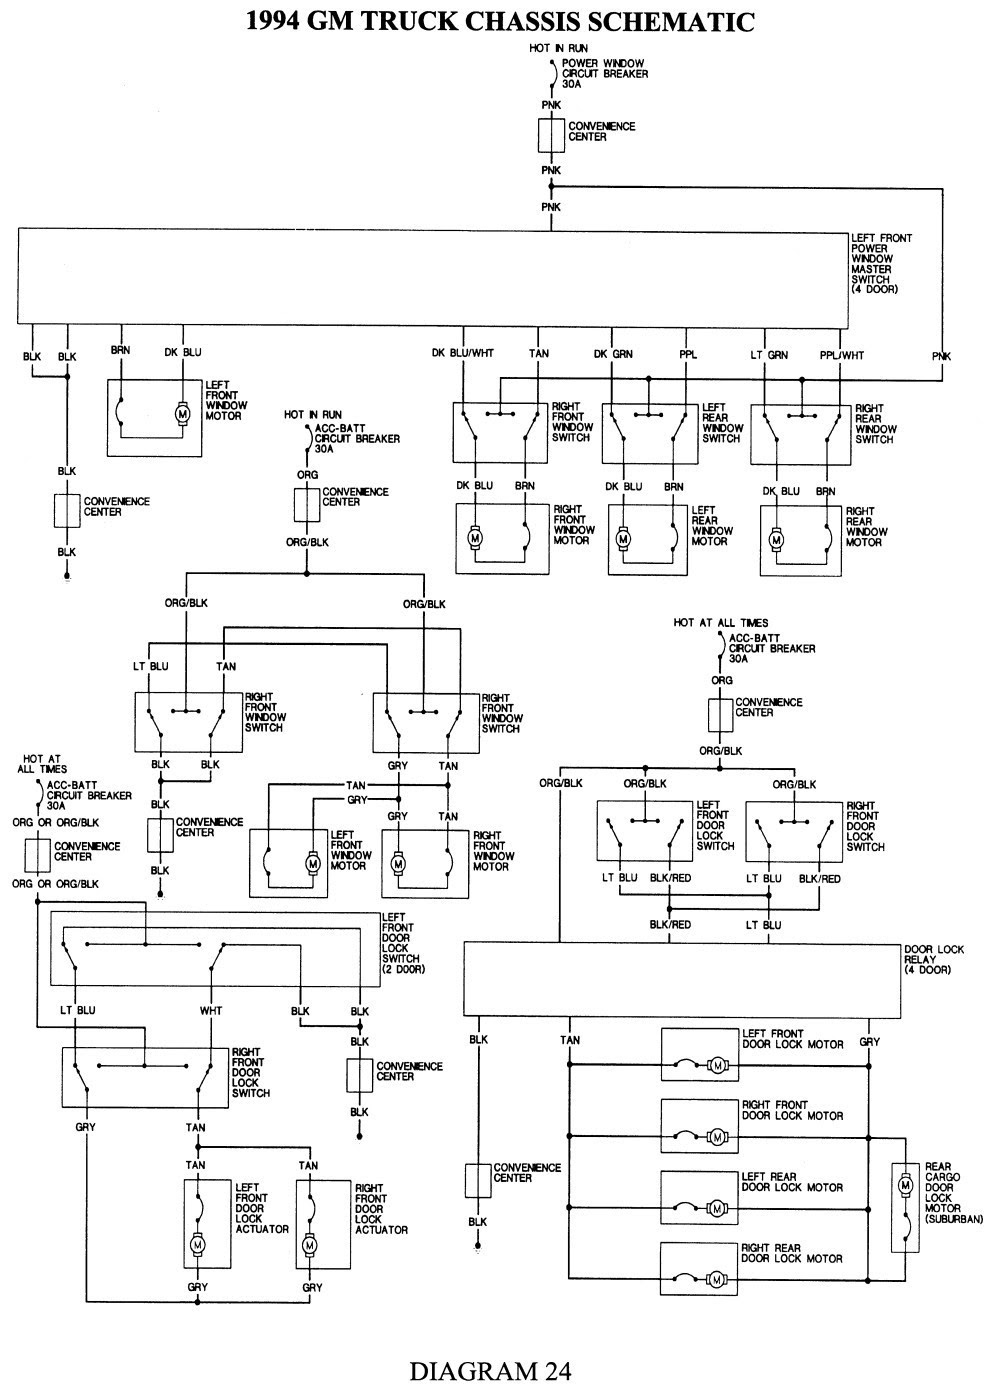 89 Chevy G20 Wiring Diagram Wiring Diagrams Name Name Miglioribanche It